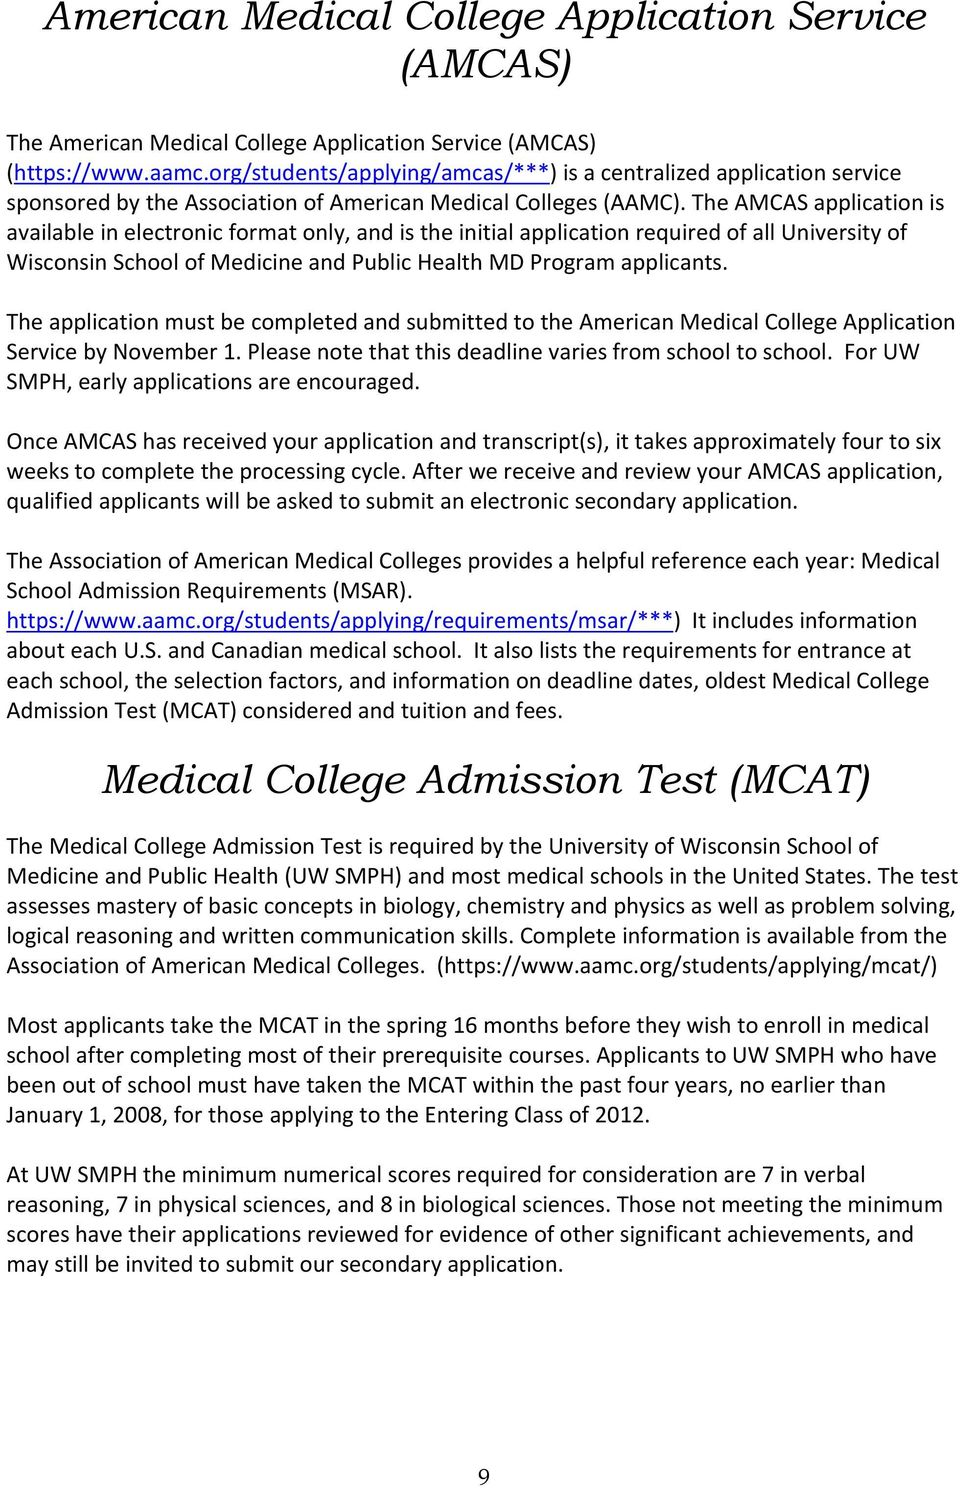 mcat practice essay prompts Title: sample mcat essays question author: marketta tamara subject: sample mcat essays question keywords: sample mcat essay questions, mcat practice essay questions.